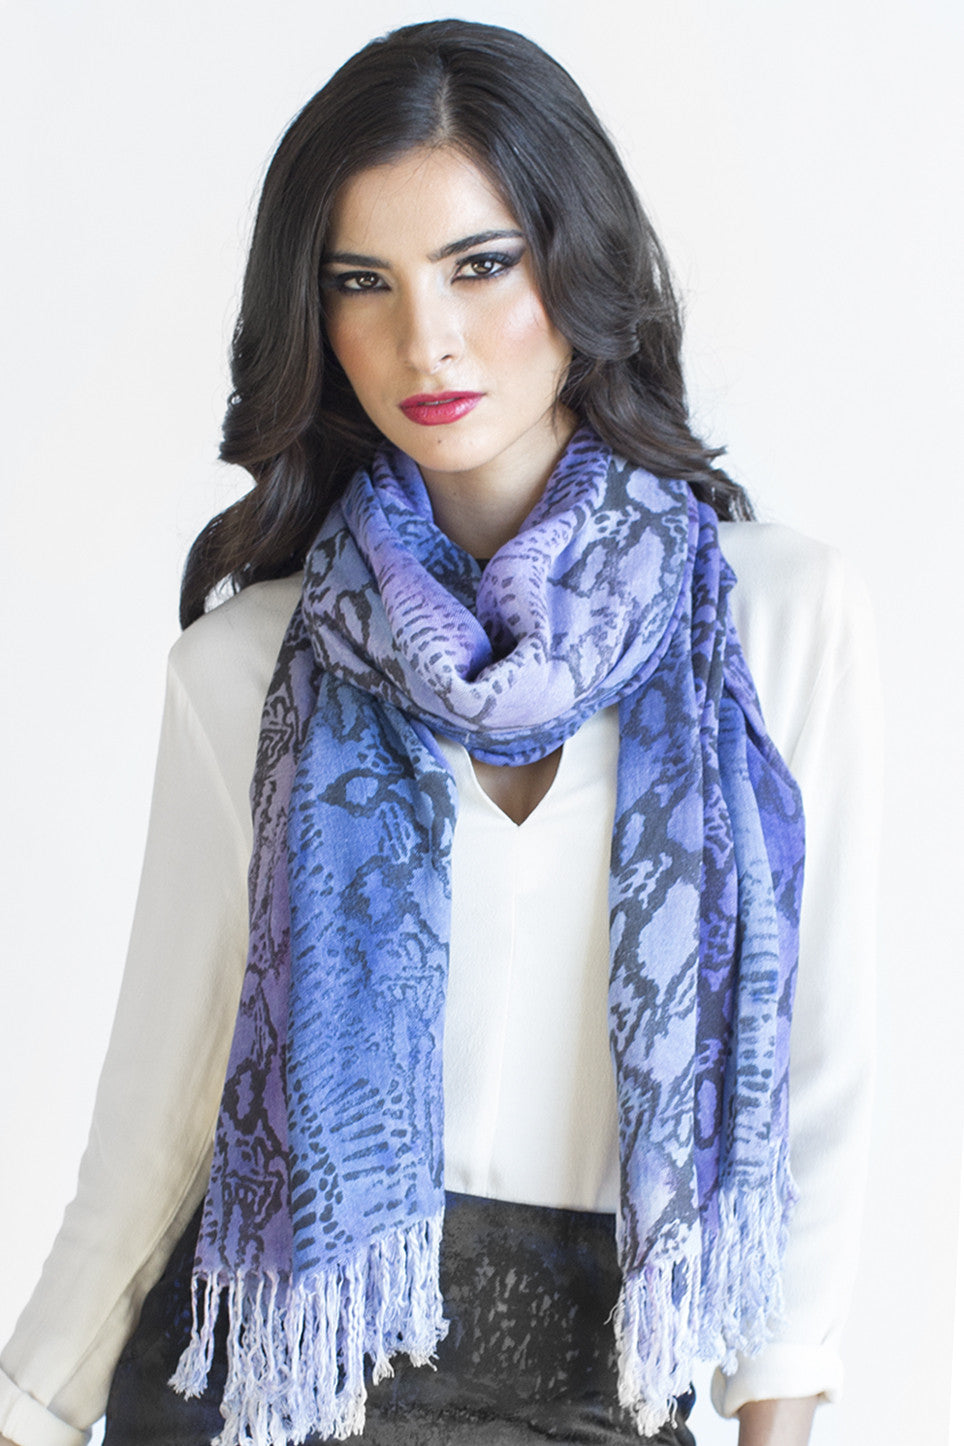 Snake Print on Scarf in Twilight